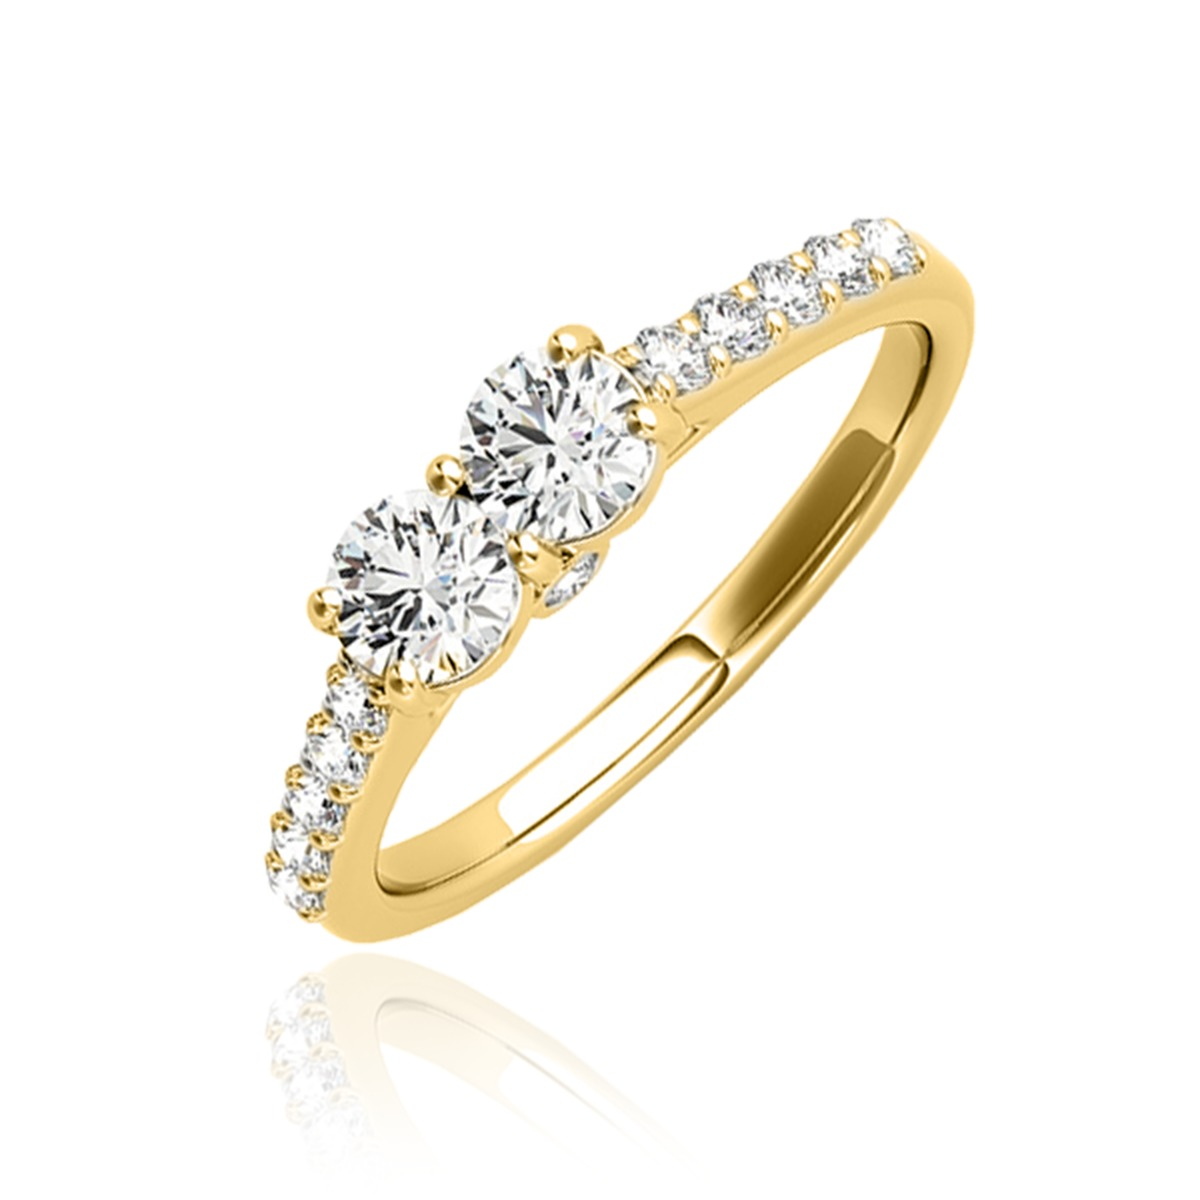 1/2 Carat T.W. Round Cut Diamond Two Stone Ring 10K Yellow Gold